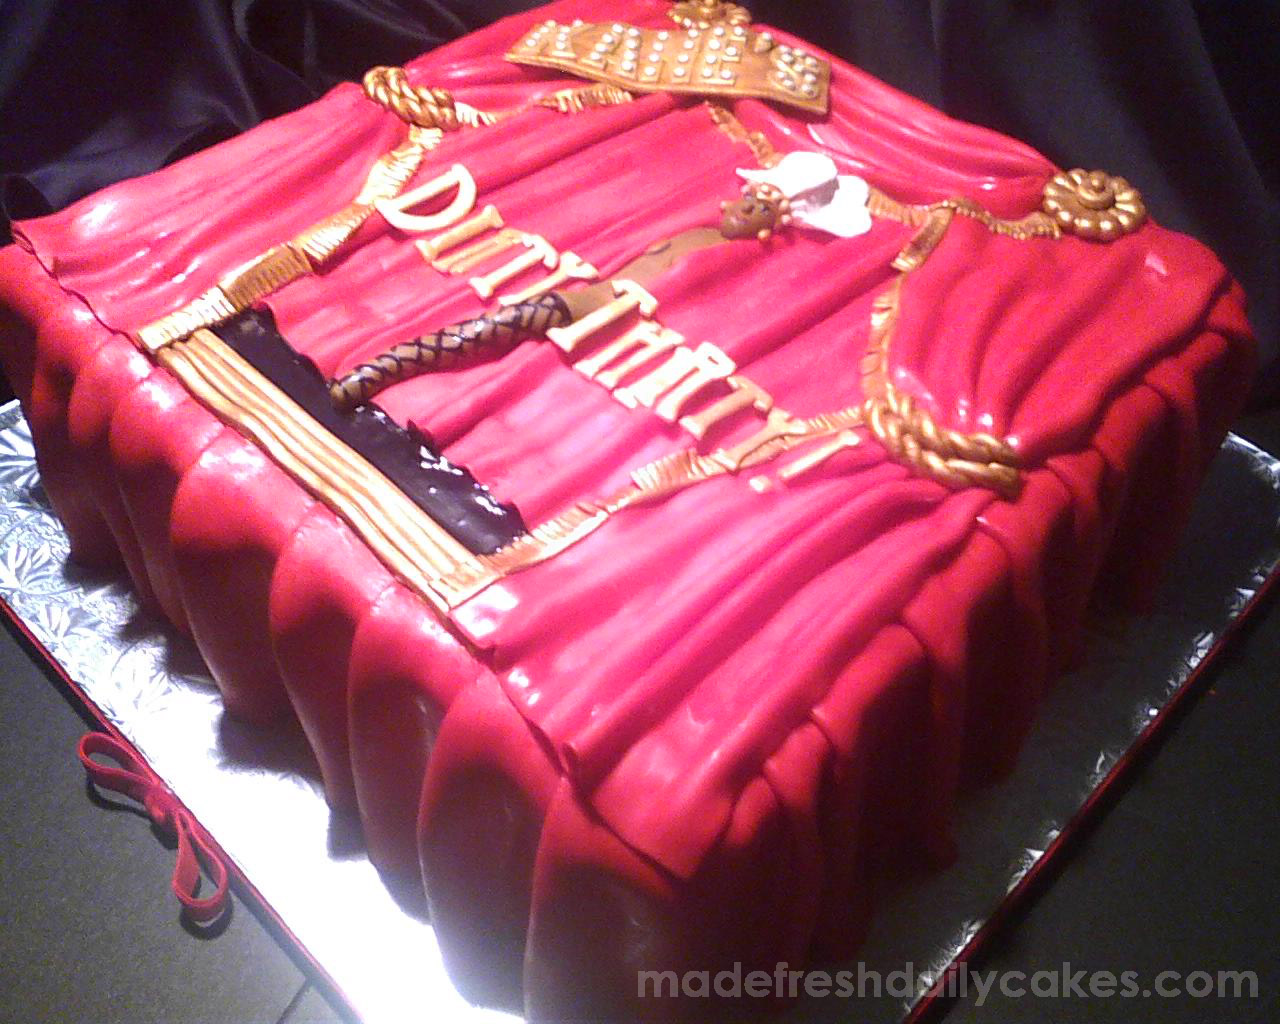 Excellent Made FRESH Daily Kanes Dirty Thirty Cake UK26